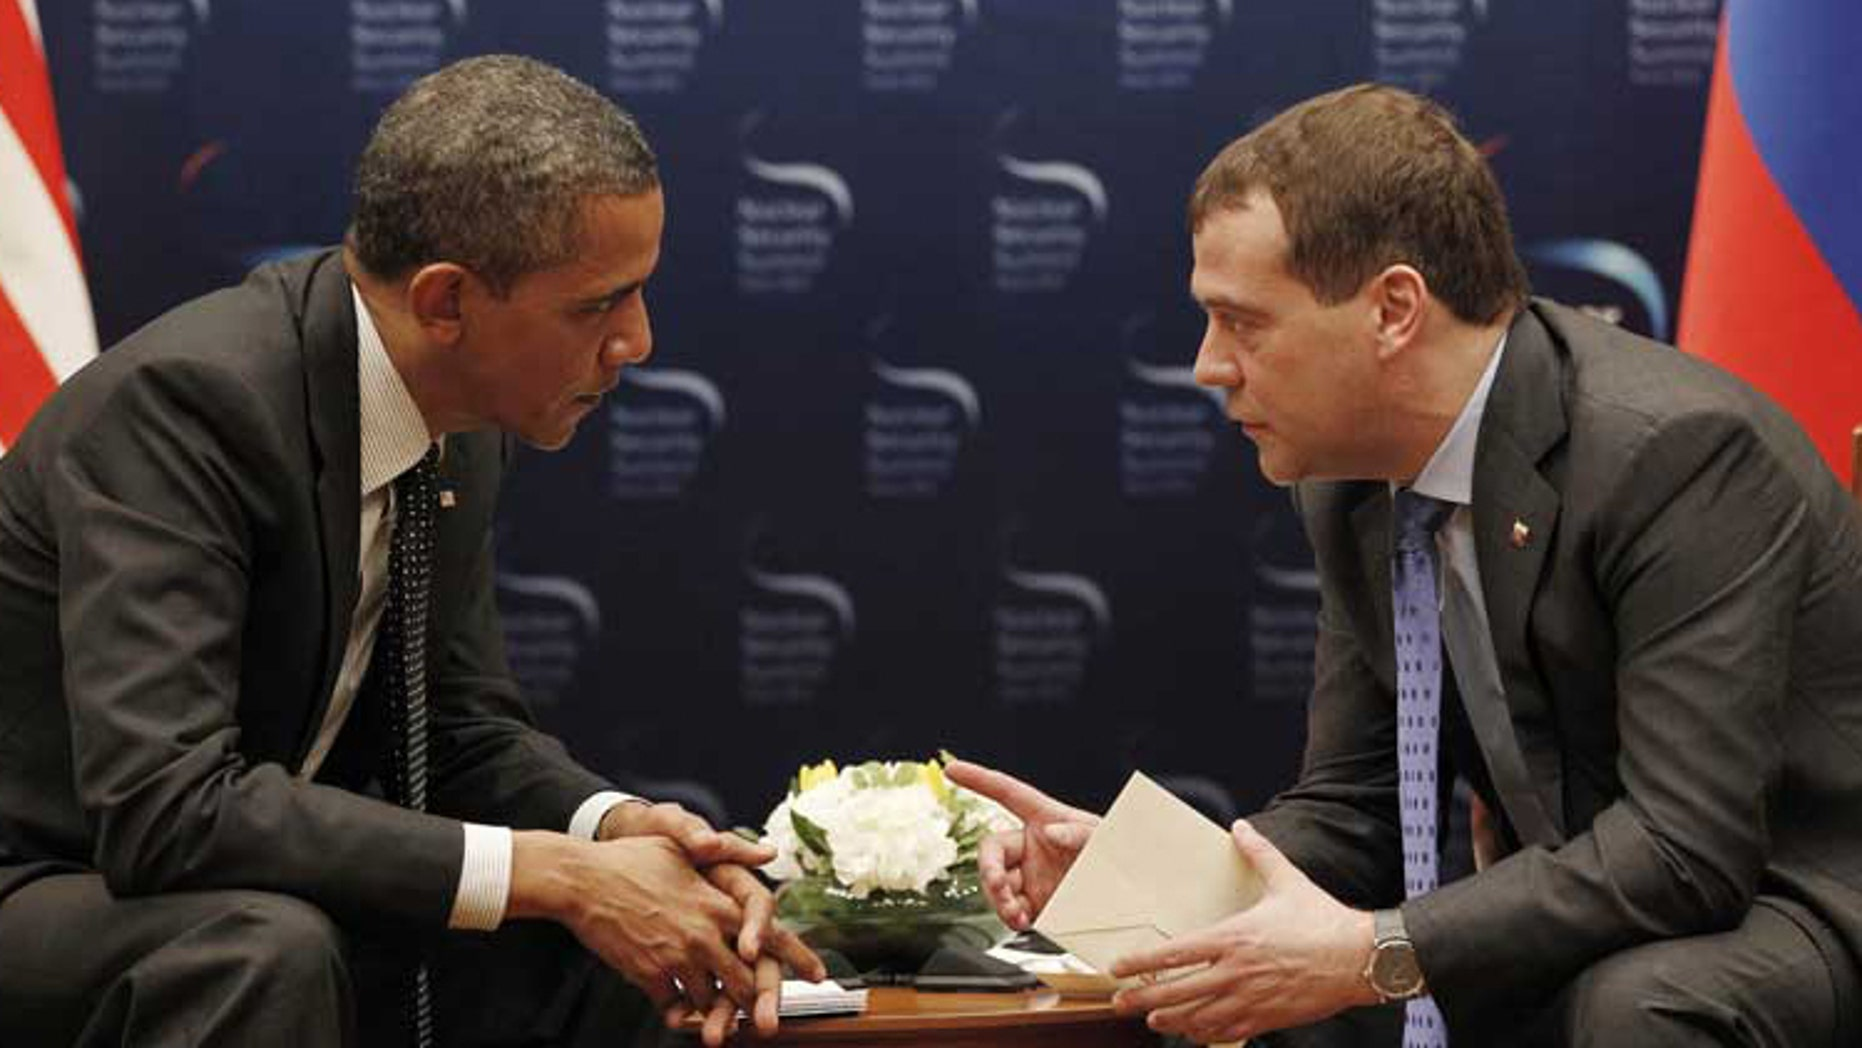 When President Obama met with Russian President Dmitry Medvedev in Seoul on March, 26, a live microphone picked up an indiscreet aside from Obama. (AP Photo/Pablo Martinez Monsivais)